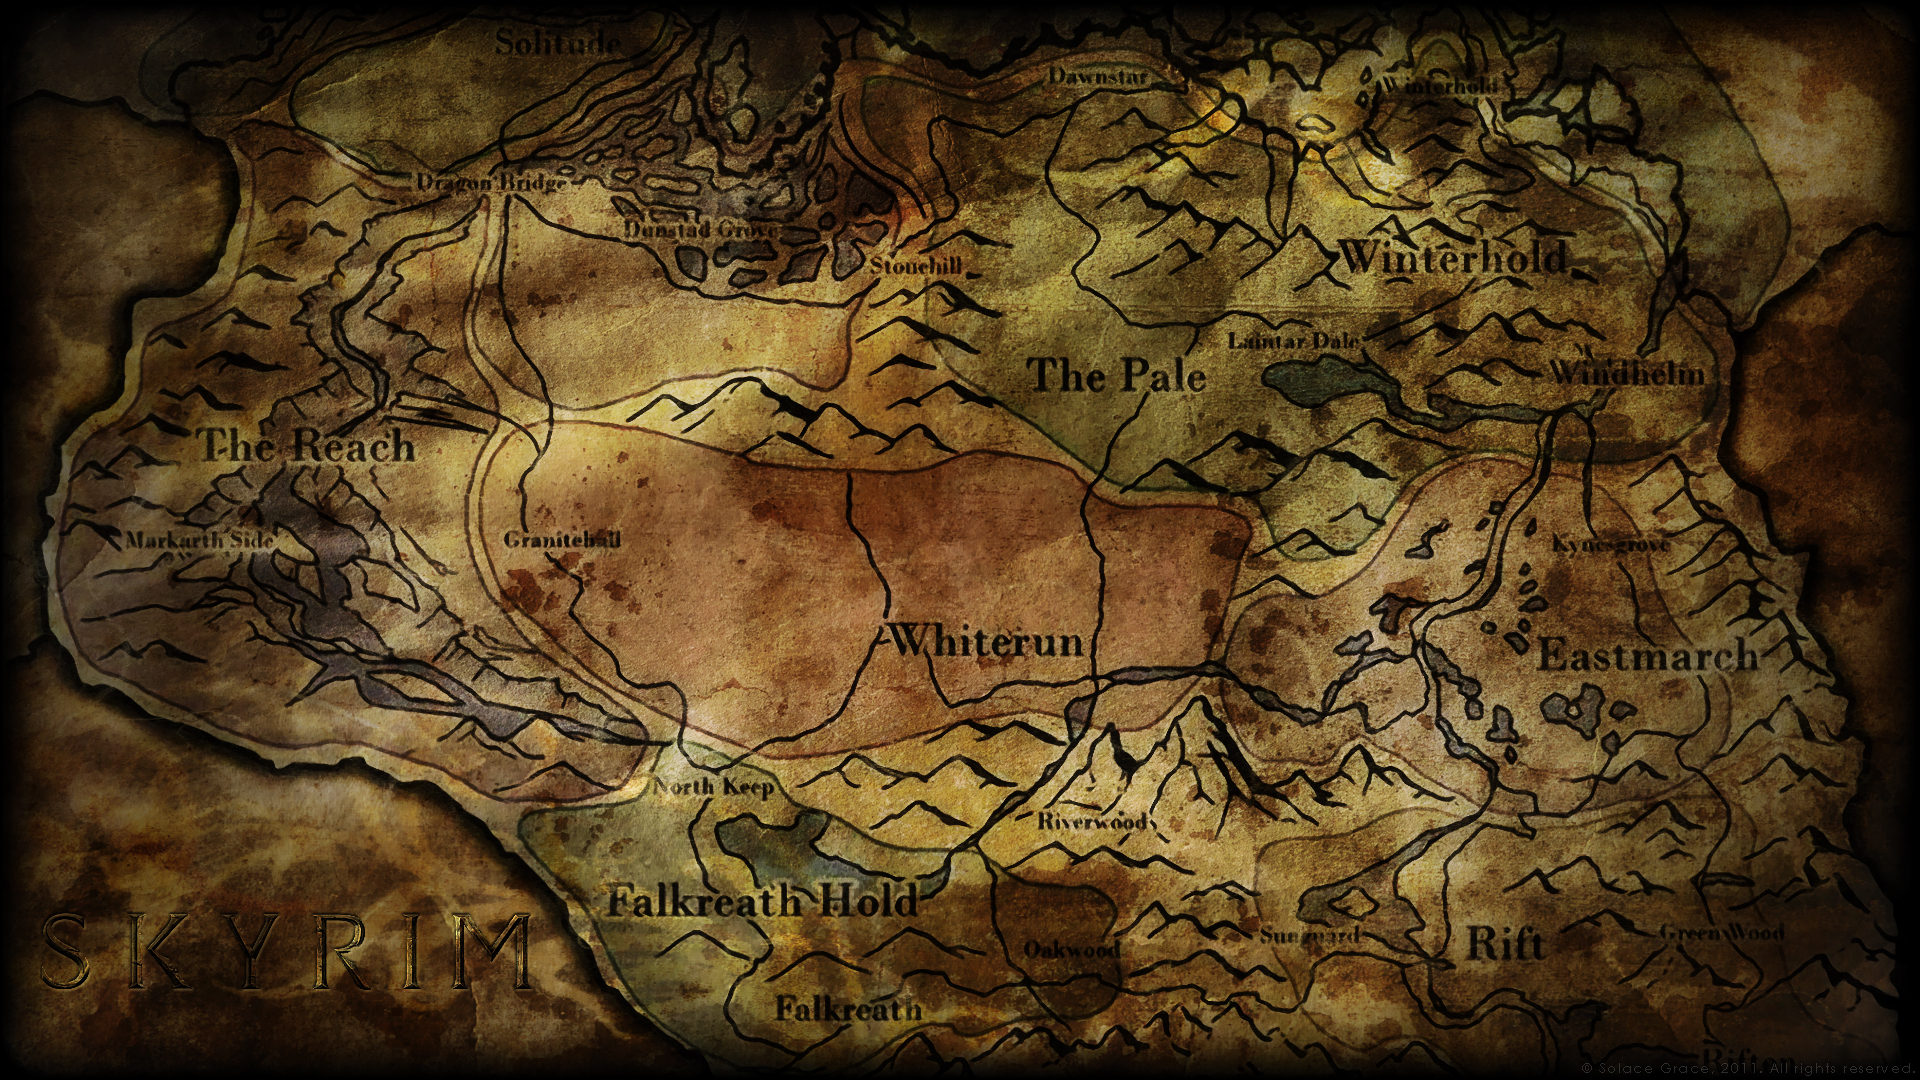 Map of the world of the game The Elder Scrolls 5: Skyrim